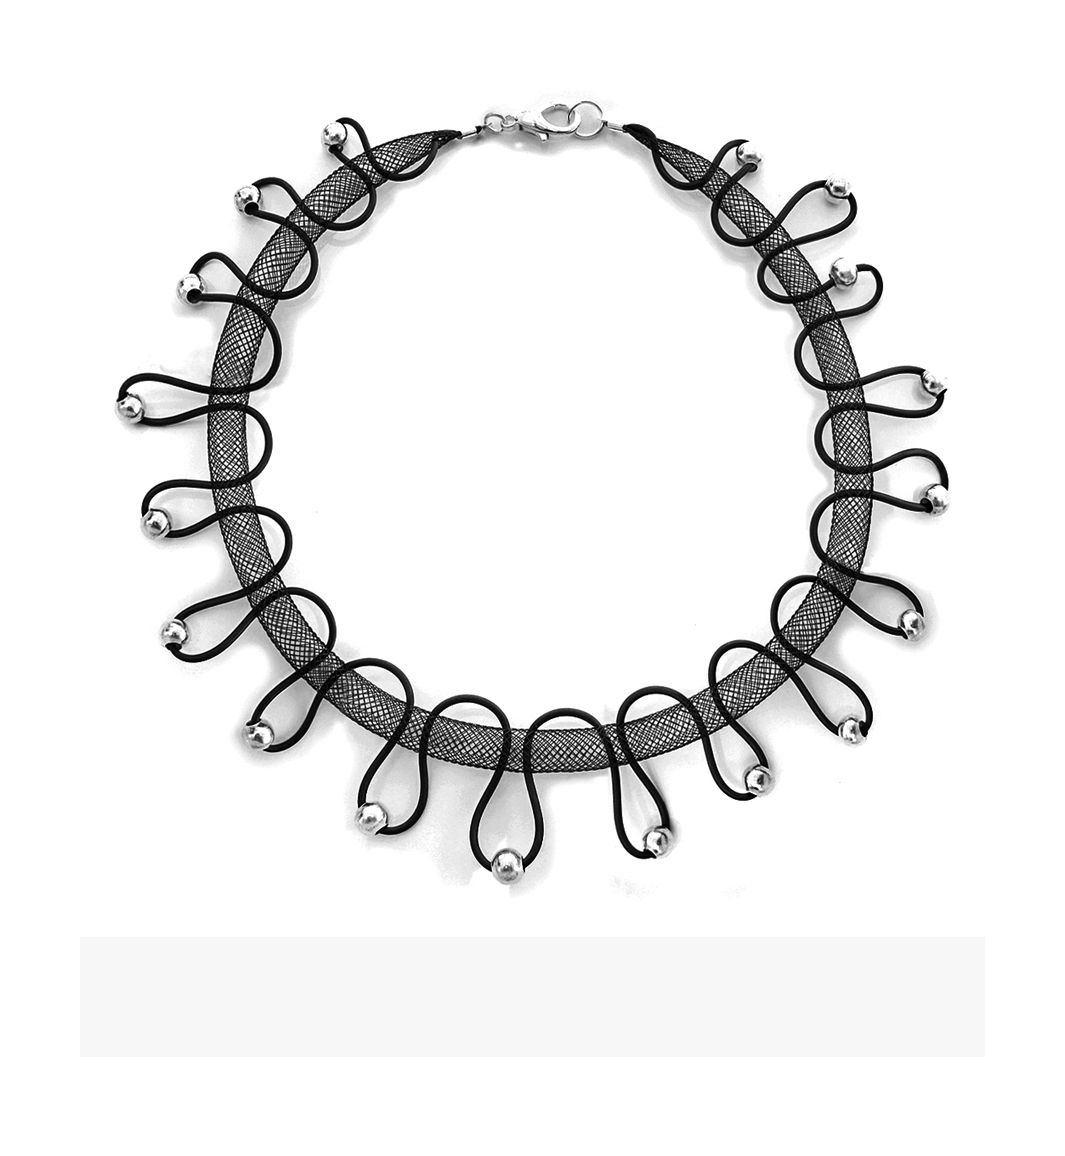 U-Boutique Shops | Black mesh tube & silicone unique handmade necklace.Silver metal beads Bib necklace.Women's necklace.Statement Jewelry | tami peretz